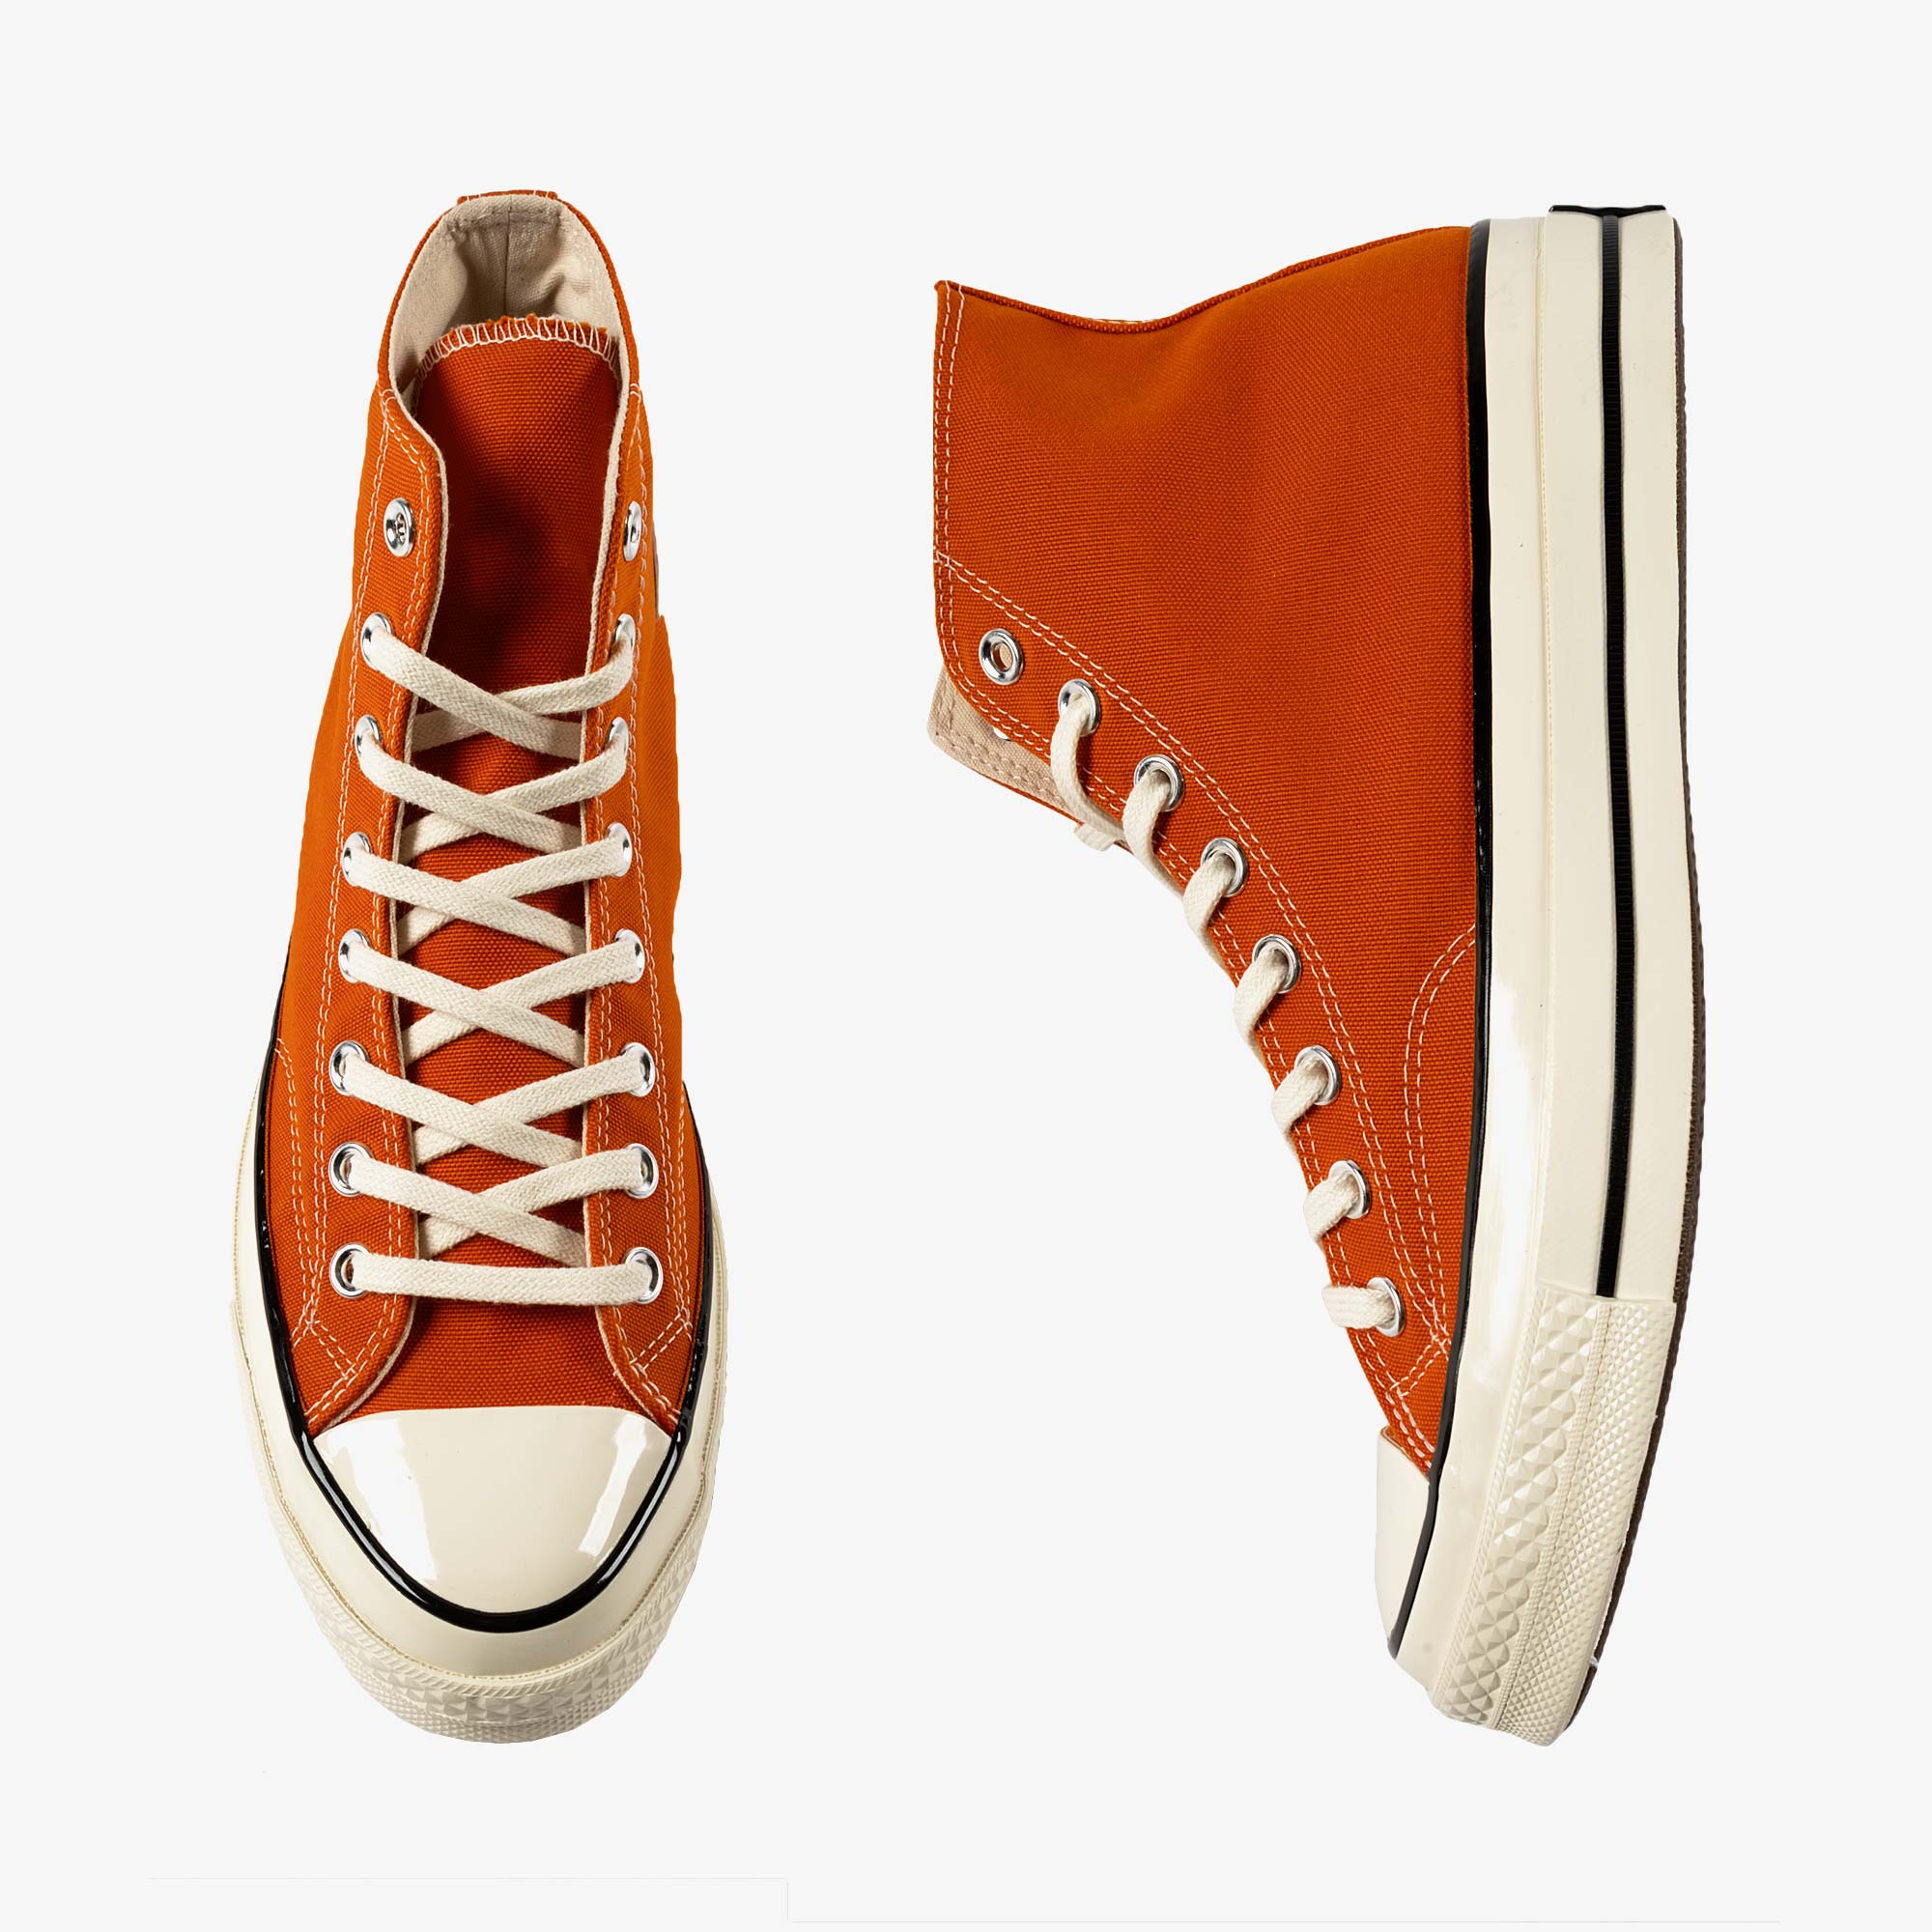 Converse Chuck Taylor Hi 70 Recycled Canvas - Fire Pit 1